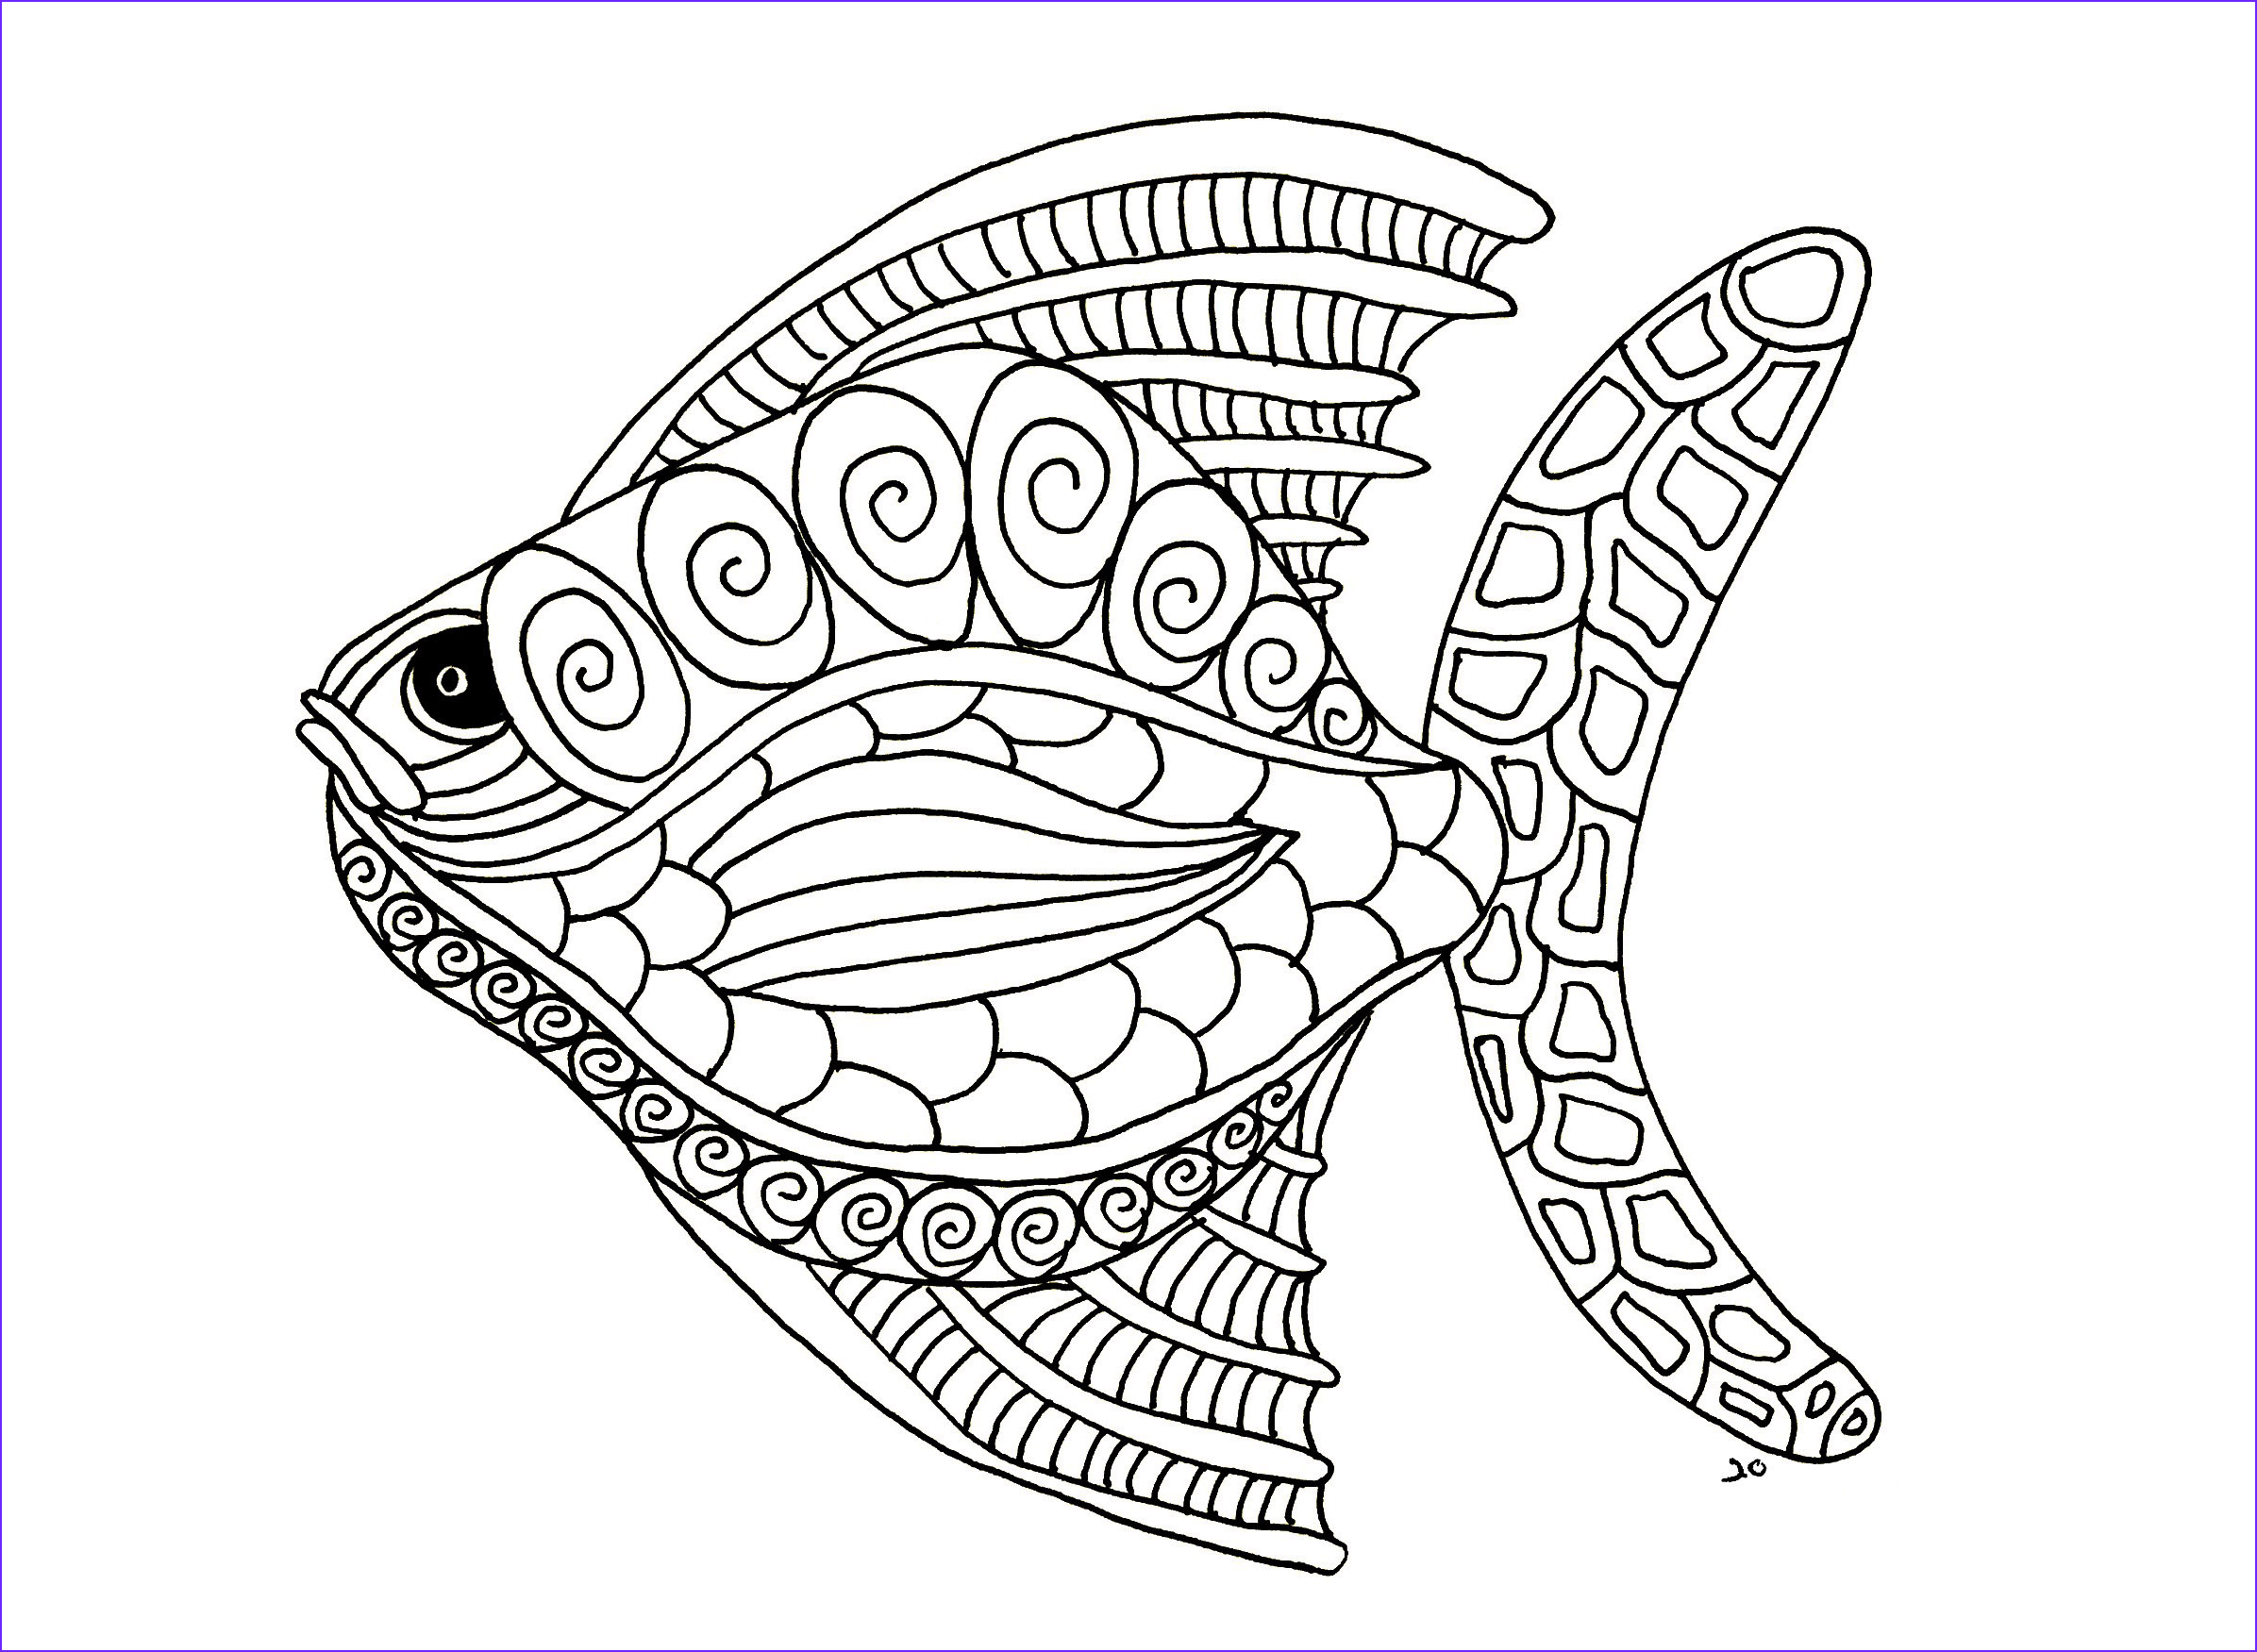 Free Printable Adult Coloring Pages Luxury Photos Animal Coloring Pages for Adults Best Coloring Pages for